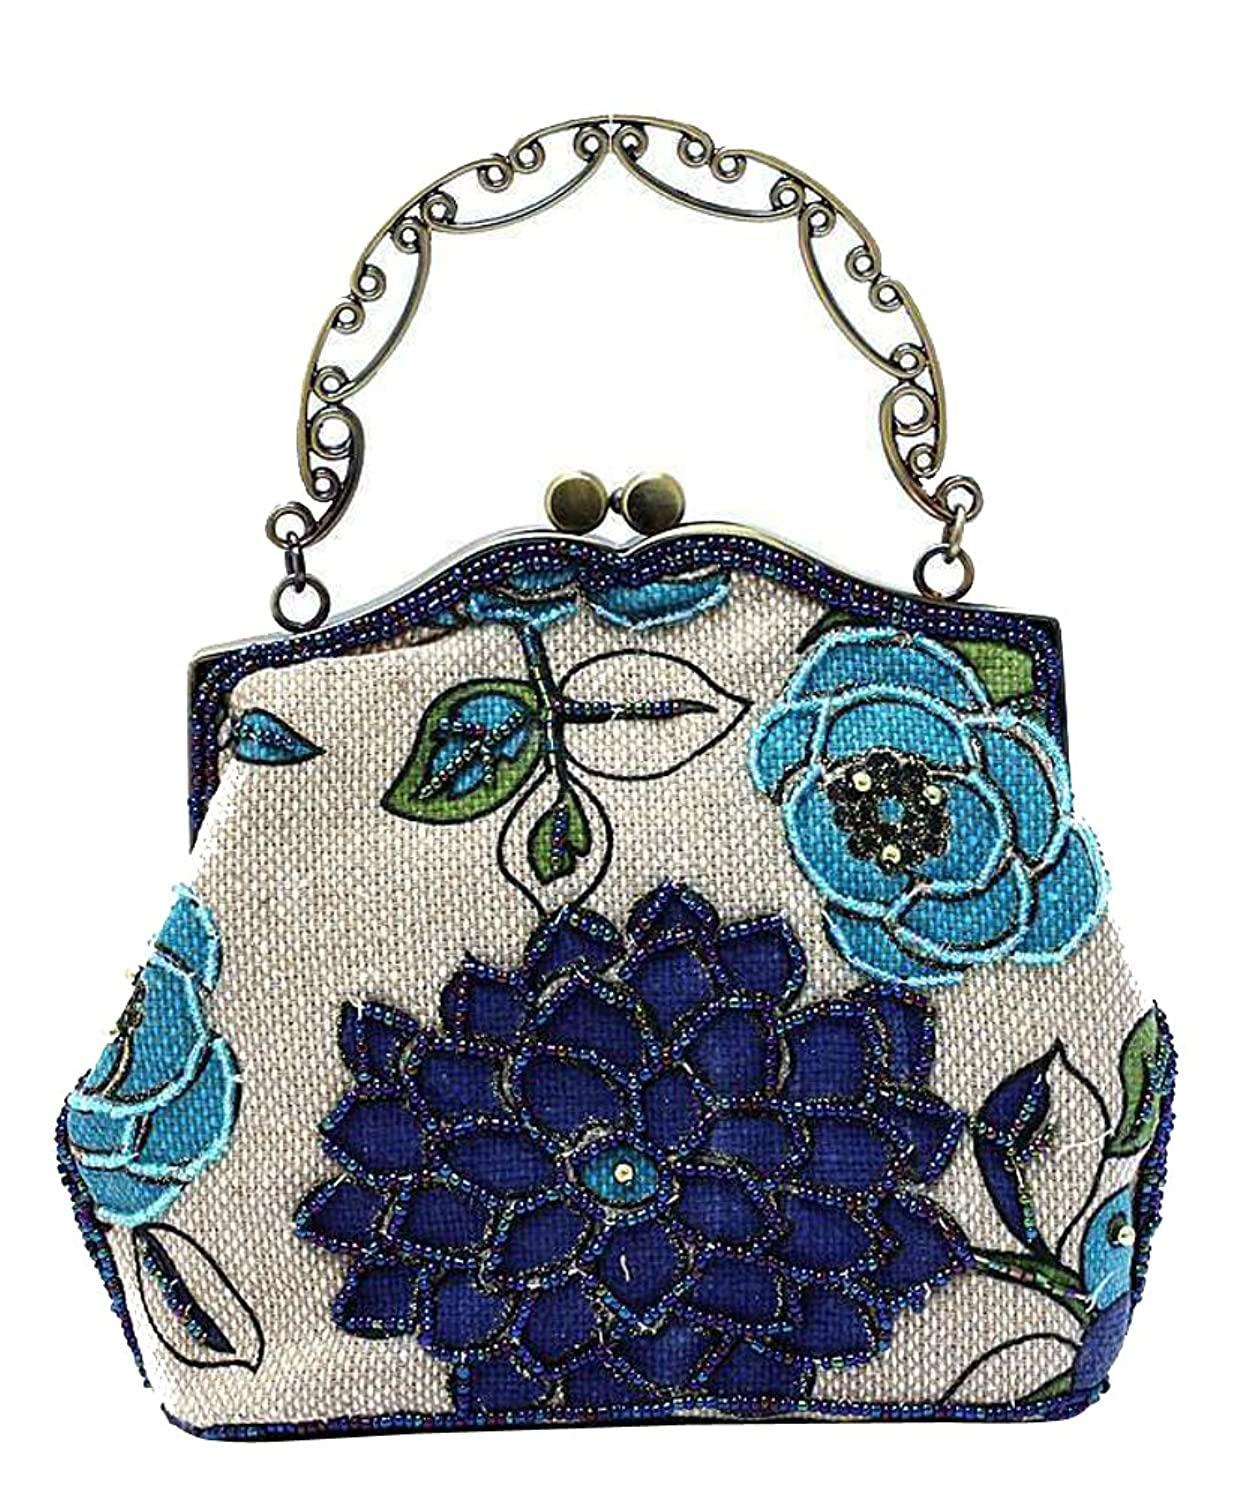 1920s Style Purses, Flapper Bags, Handbags ILISHOP Womens Vintage Luxury Printing Beaded Women Handbag Evening Bag $19.99 AT vintagedancer.com